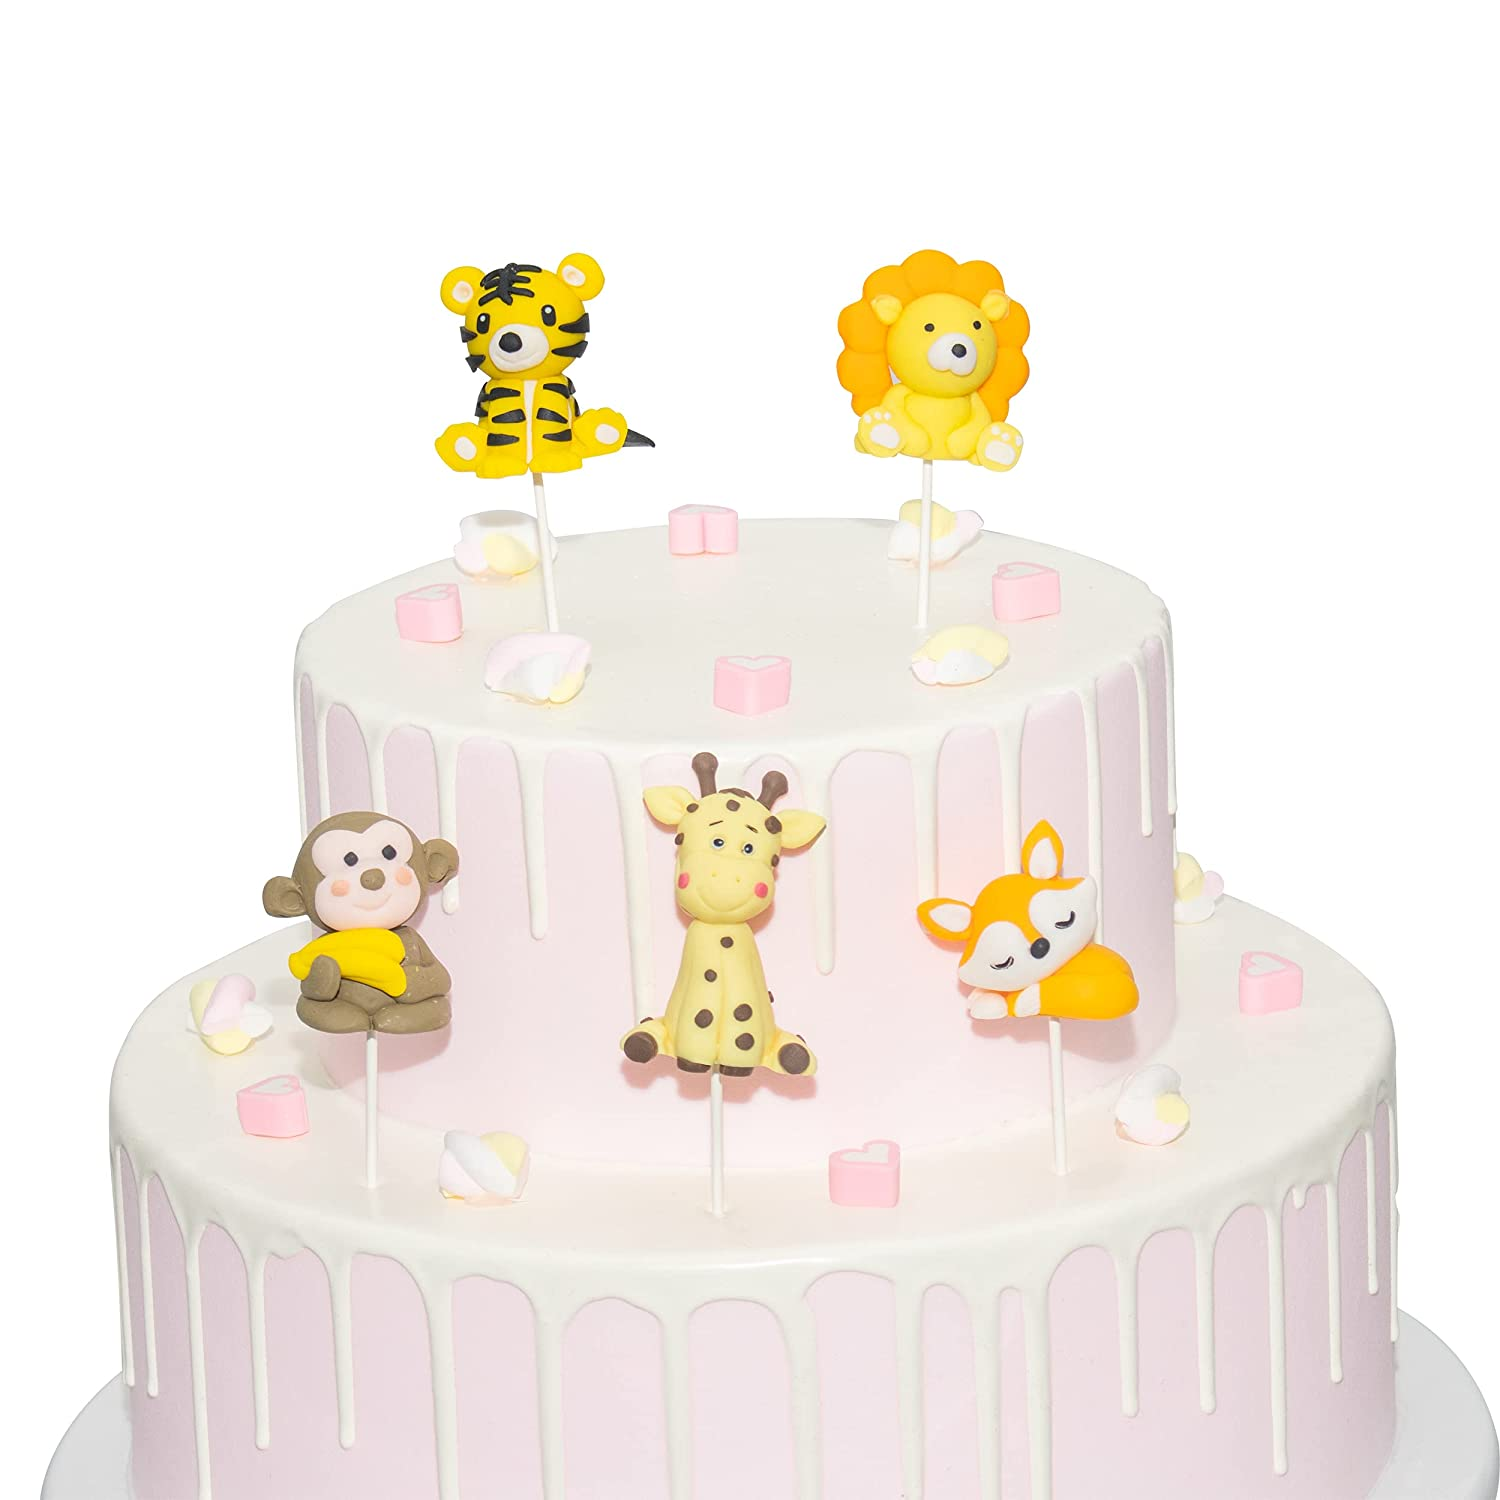 Popular brand 3D Cartoon Animal Cupcake Toppers Lion Cake Topper Birthday Attention brand Cupc